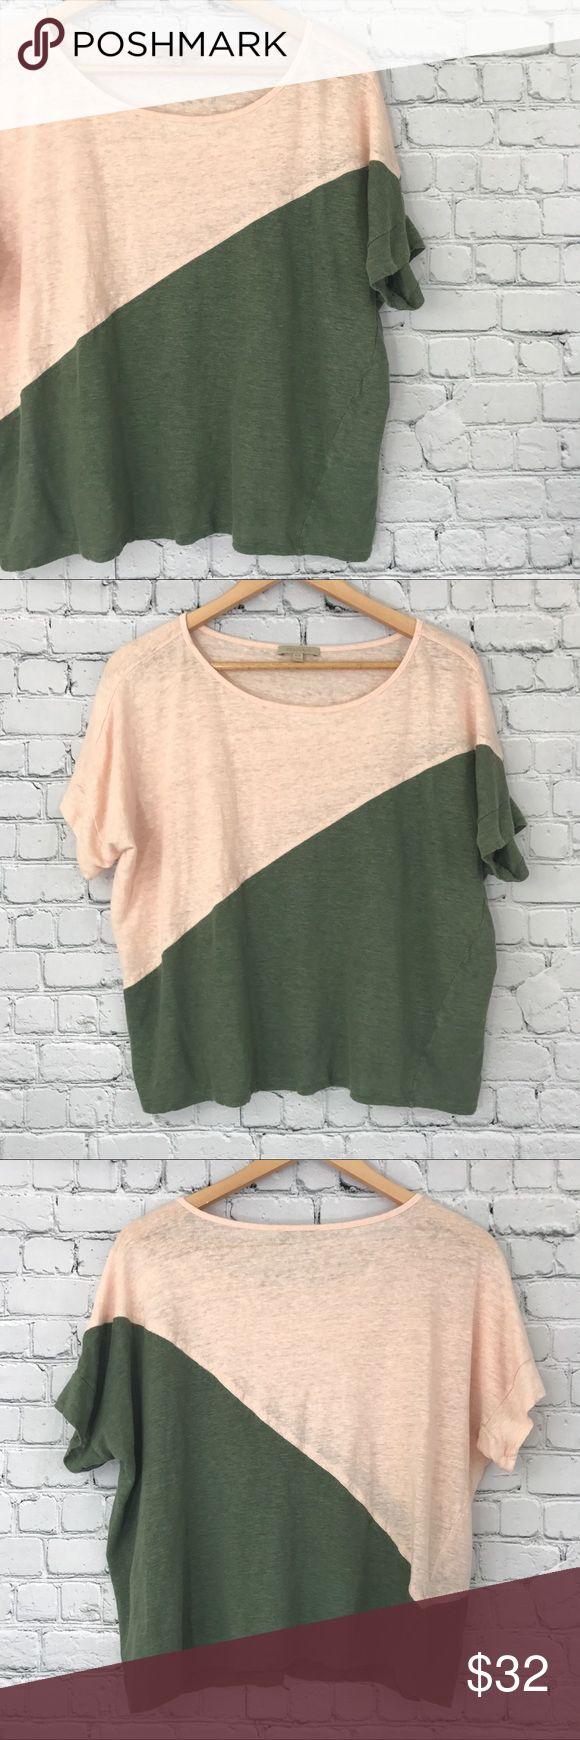 {Bordeaux} Anthropologie Linen Colorblock Top Excellent used condition! 100% Linen. Perfect with white jeans. Anthropologie Tops Blouses